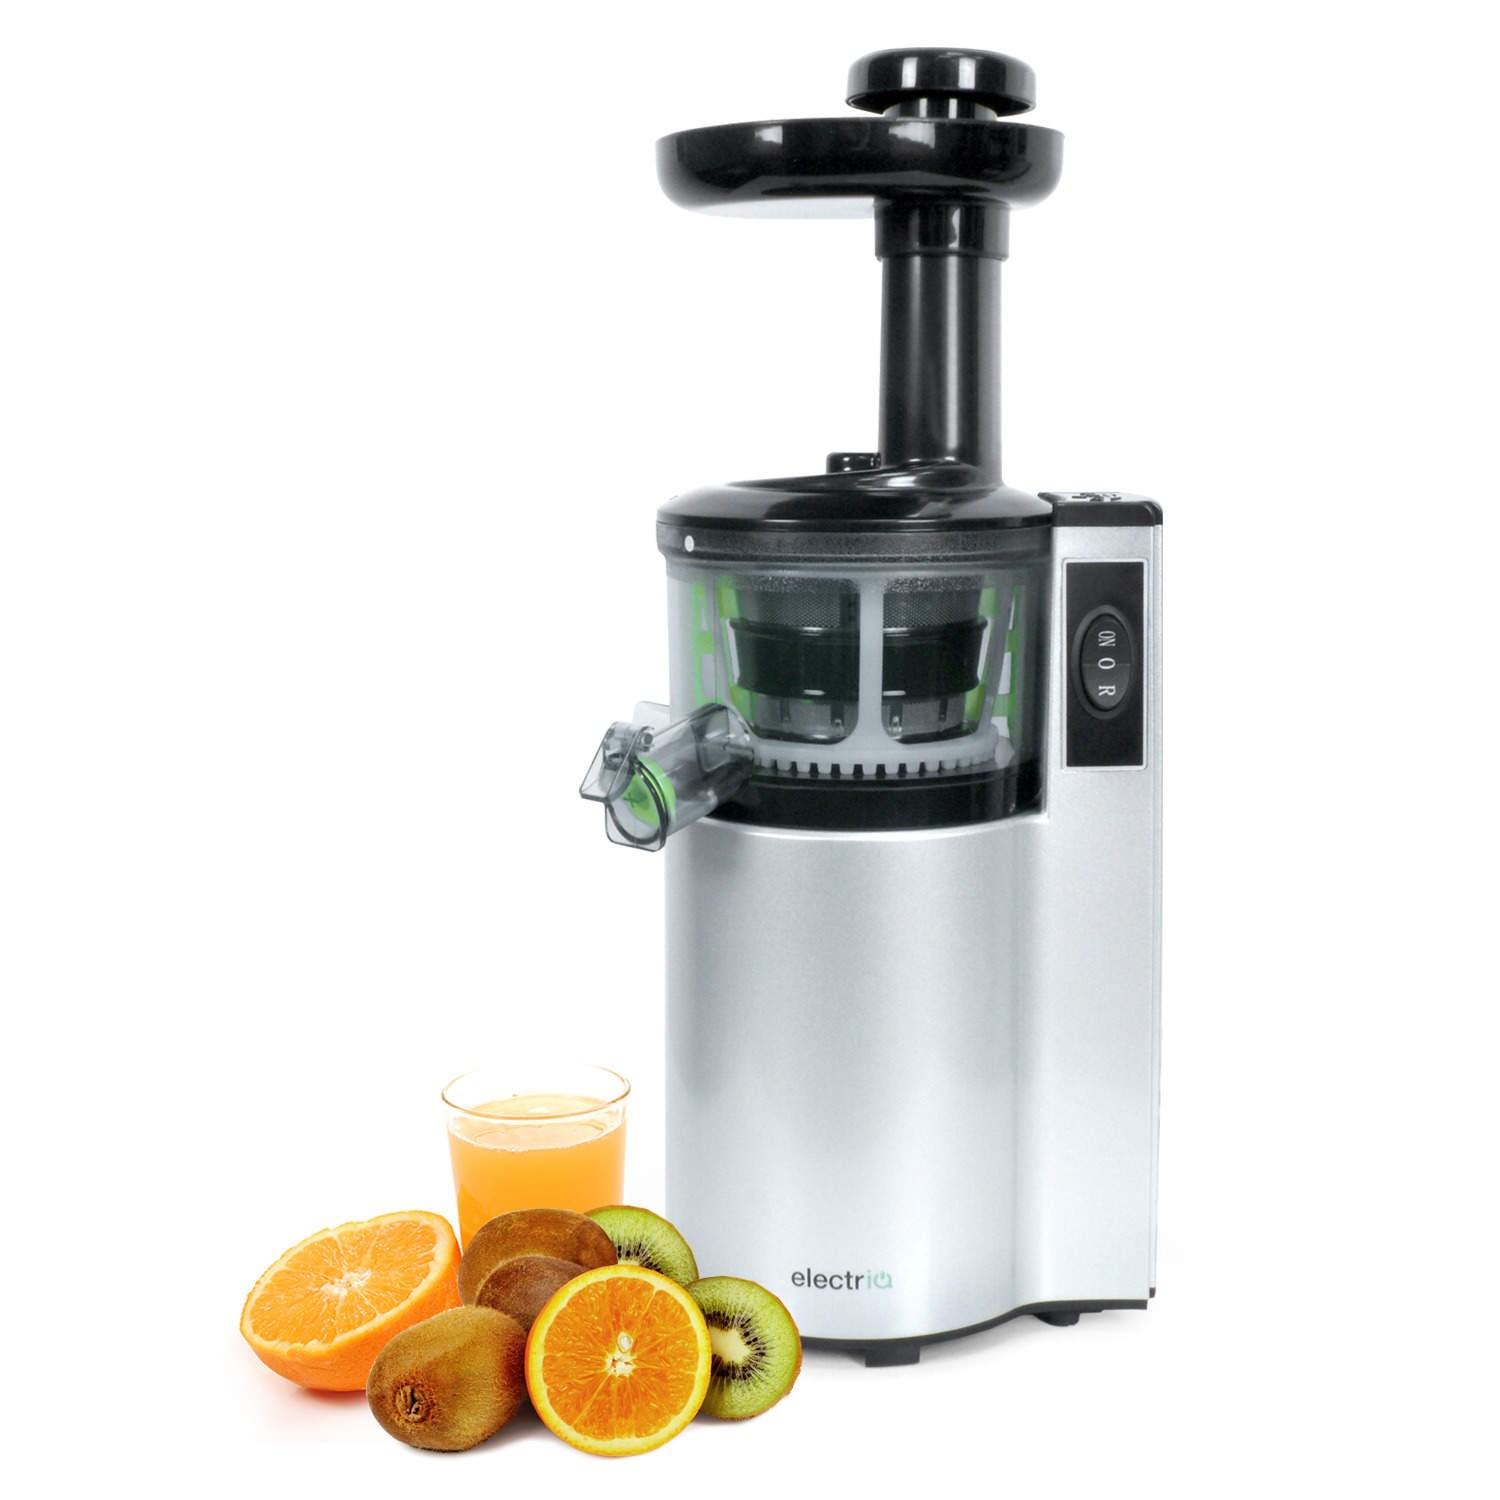 Slow Juicer Oranges : ElectriQ vertical Slow Masticating Juicer Fruit vegetable Juice Extractor eBay